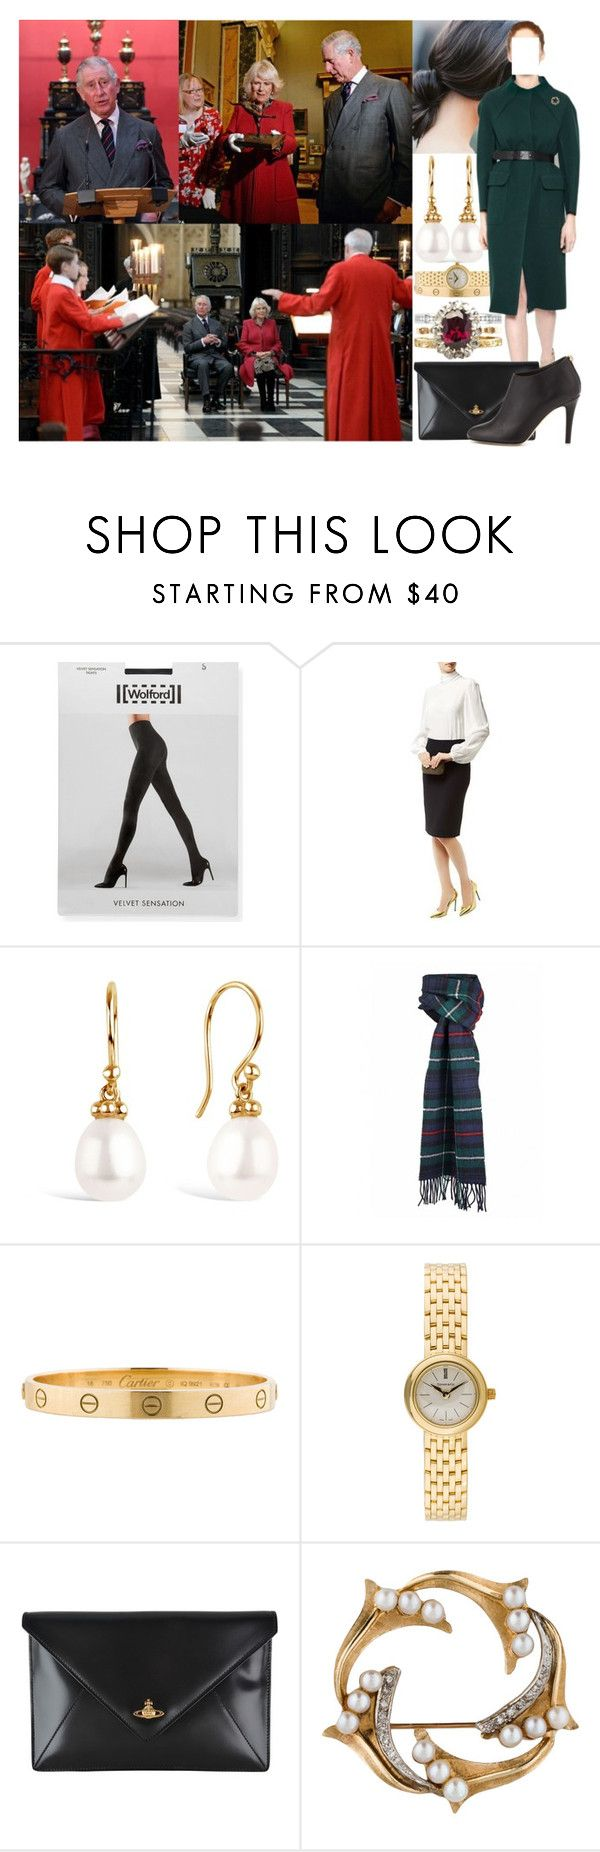 """""""Visiting the University of Cambridge's Fitzwilliam Museum to mark its bicentenary and to celebrate the 600th anniversary of the Cambridge University Library and visiting King's College Cambridge to listen to a rehearsal by King's College Choir"""" by marywindsor ❤ liked on Polyvore featuring Wolford, Alexander McQueen, Cartier, Tiffany & Co., Orla Kiely, Vivienne Westwood and Jimmy Choo"""